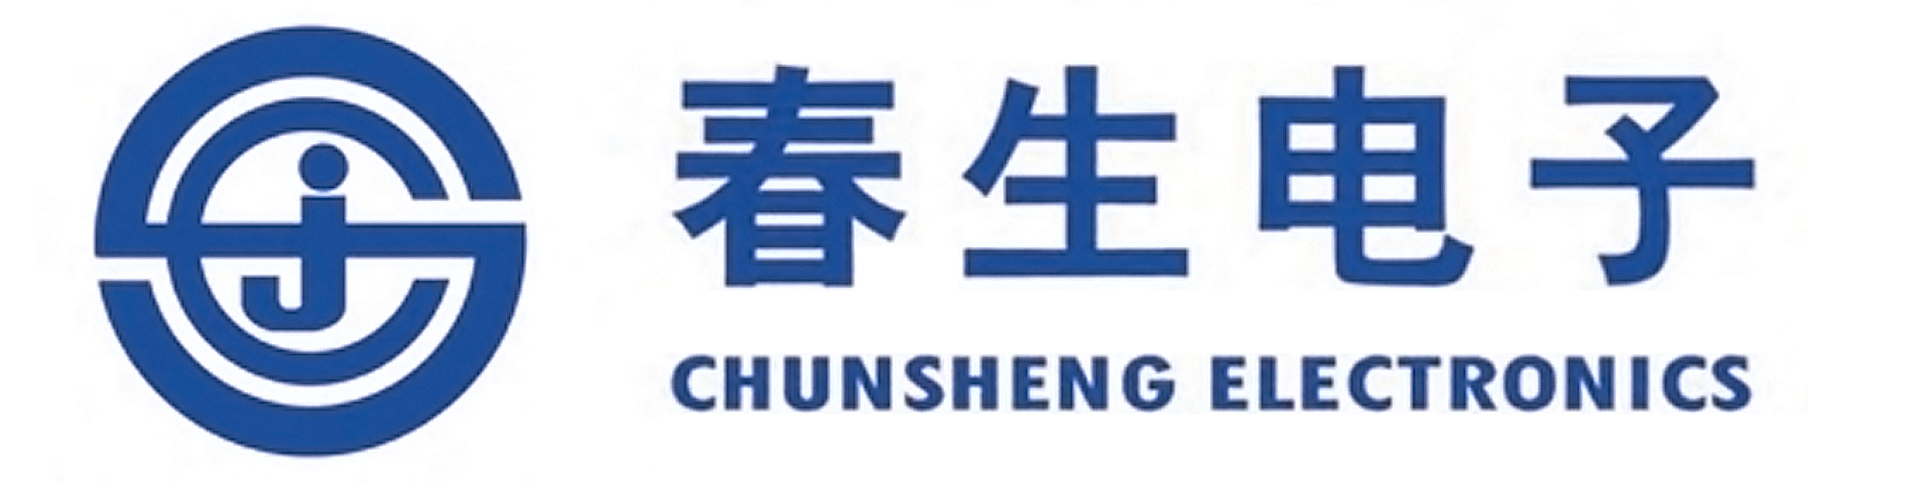 CDG-Connector-Distribution-Chungsheng-Electronics-Logo-1600